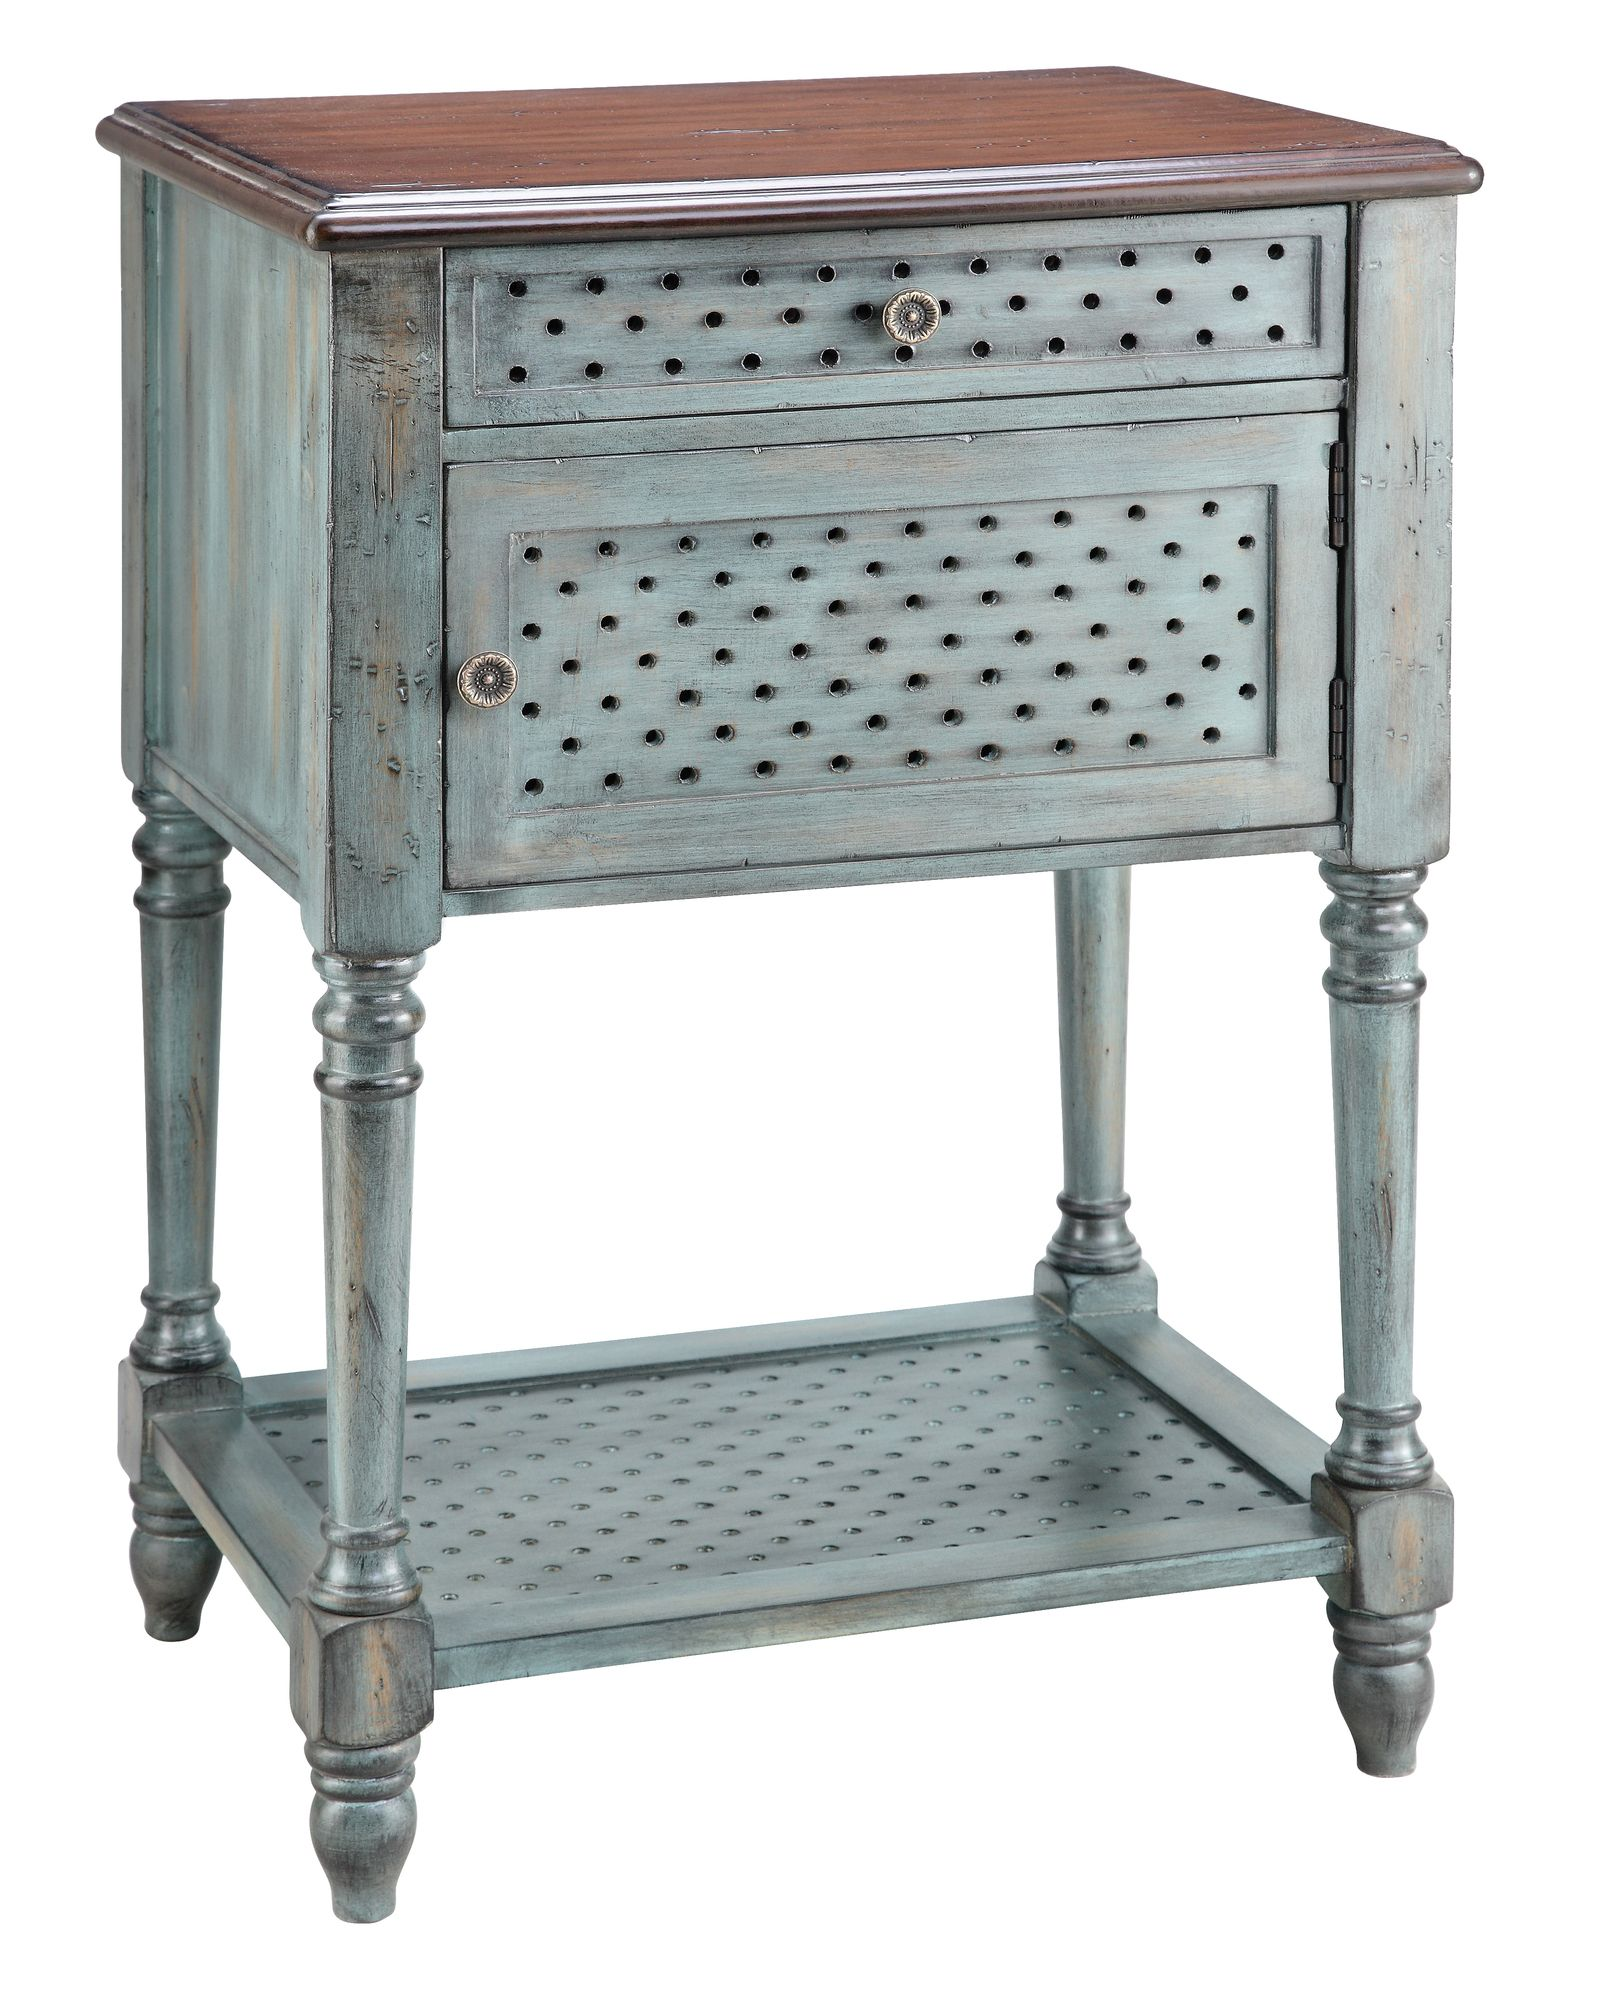 stein world painted treasures door drawer moonstone accent table with doors bark thins target antique pedestal side outdoor dining chairs clearance moroccan mosaic garden xmas